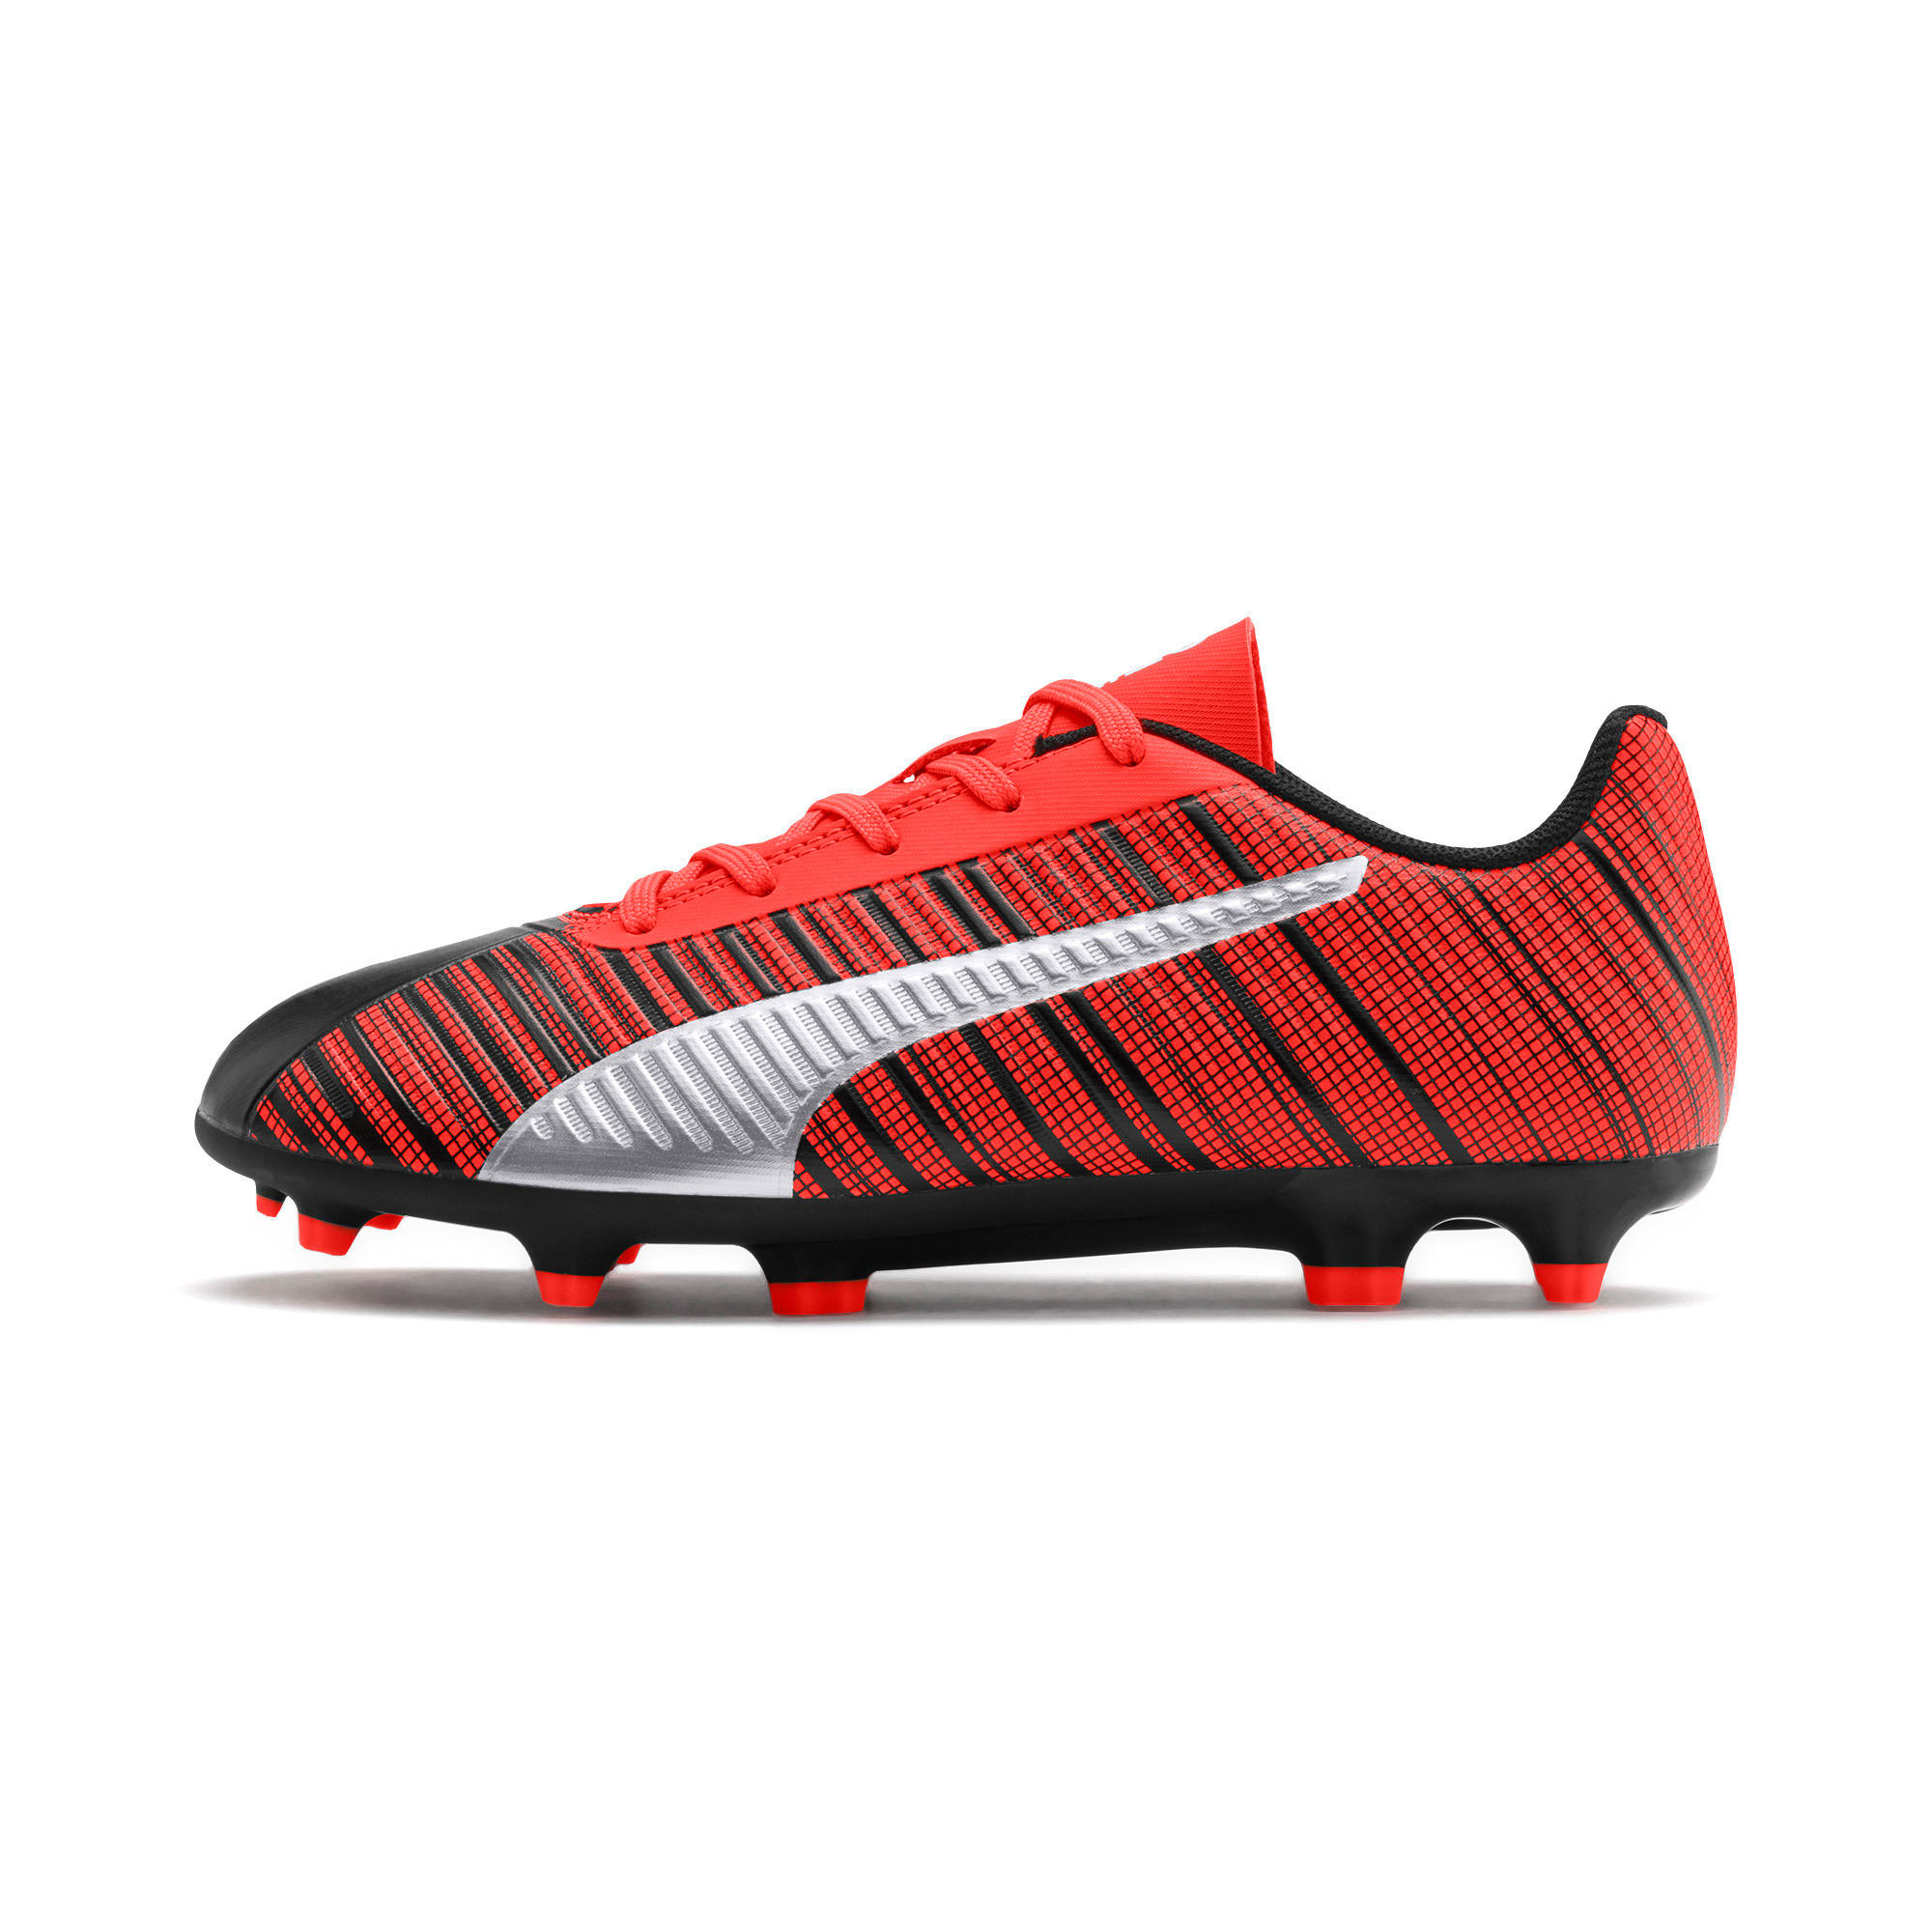 Thumbnail 1 of PUMA ONE 5.4 IT Youth Football Boots, Black-Nrgy Red-Aged Silver, medium